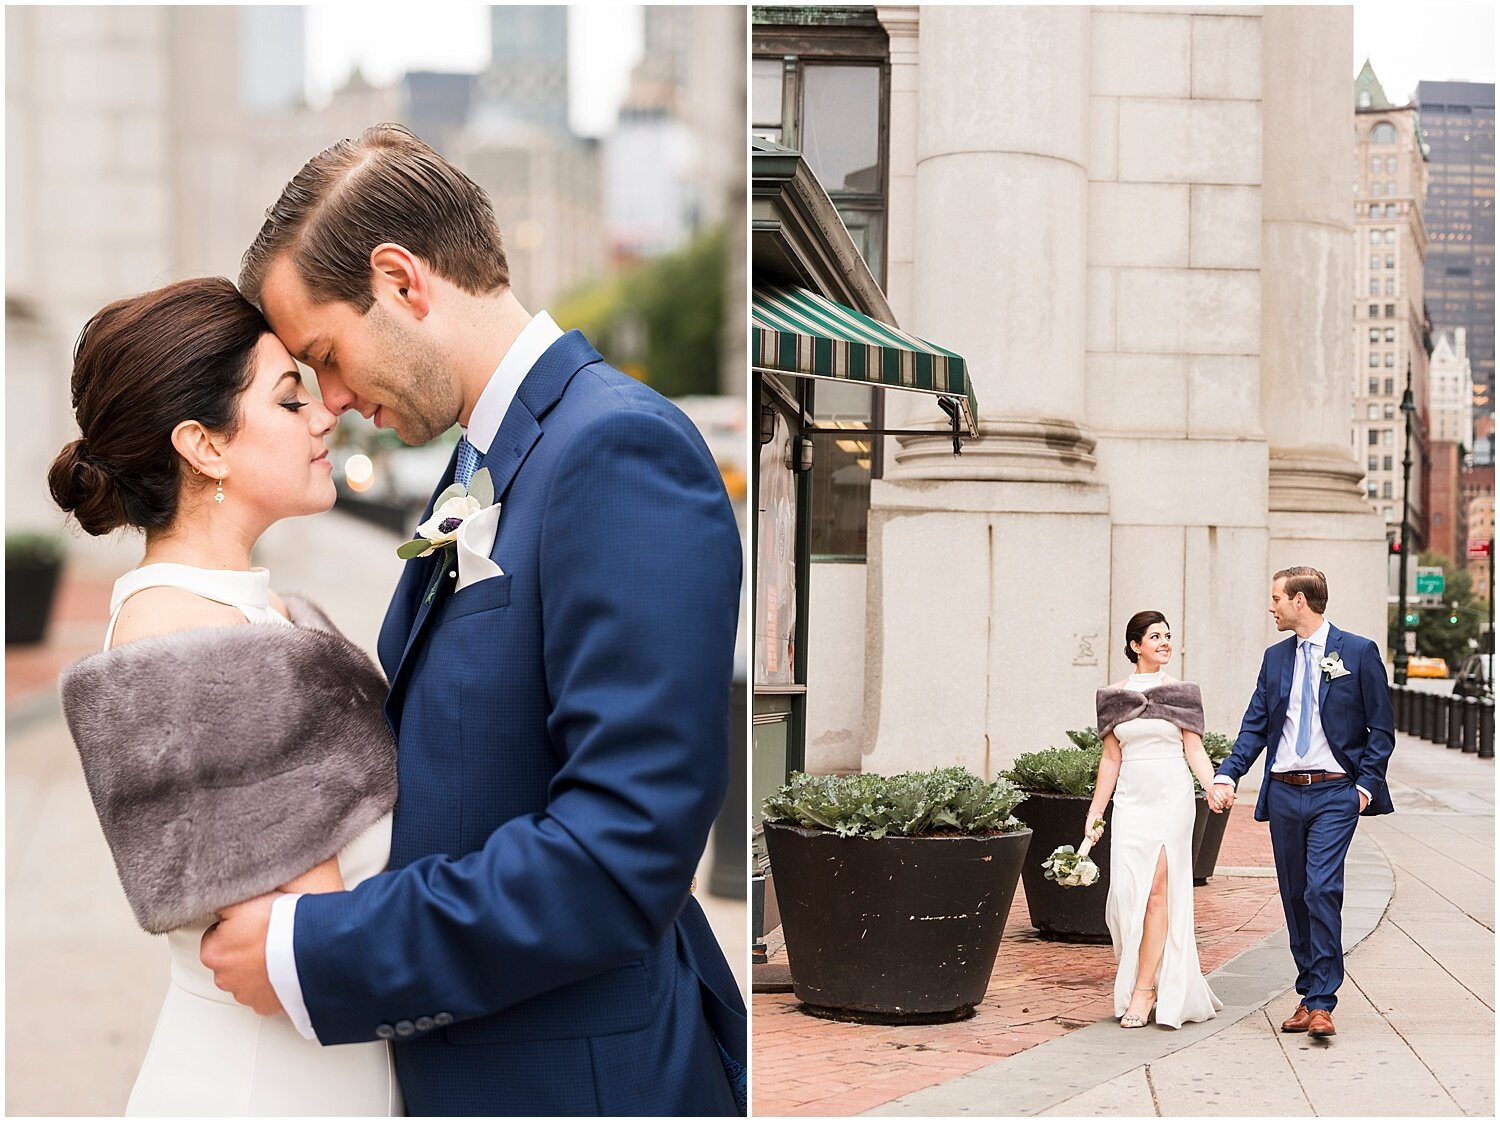 NYC-City-Hall-Courthouse-Elopement-Photographer-Apollo-Fields-029.jpg